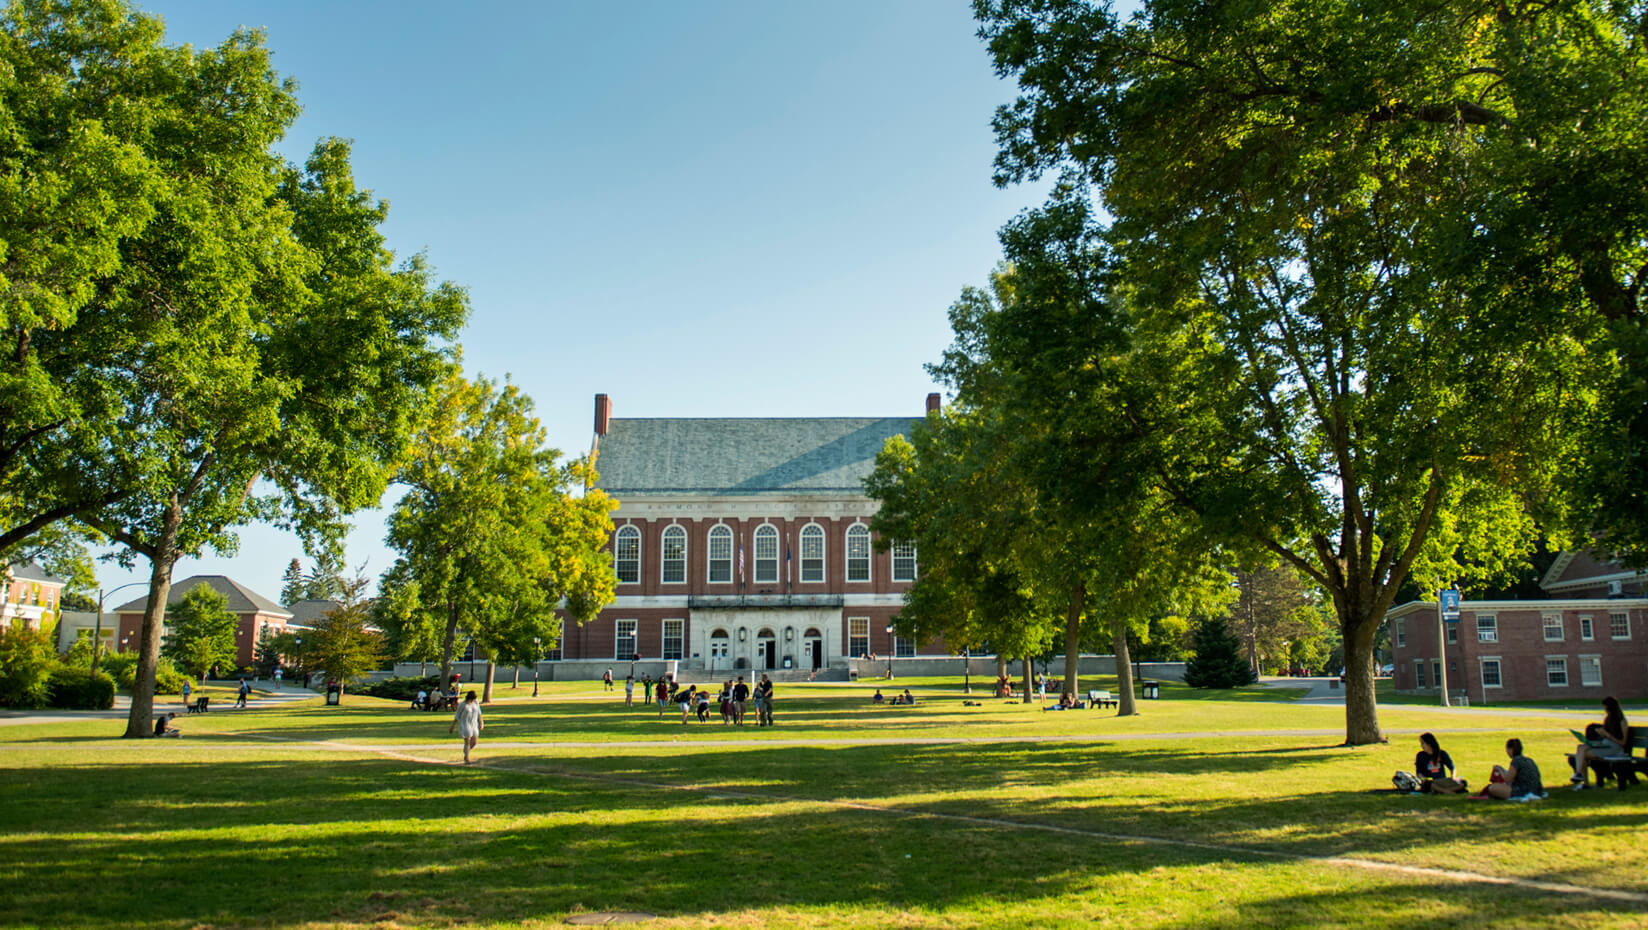 University of Maine Mall and Fogler Library in summer